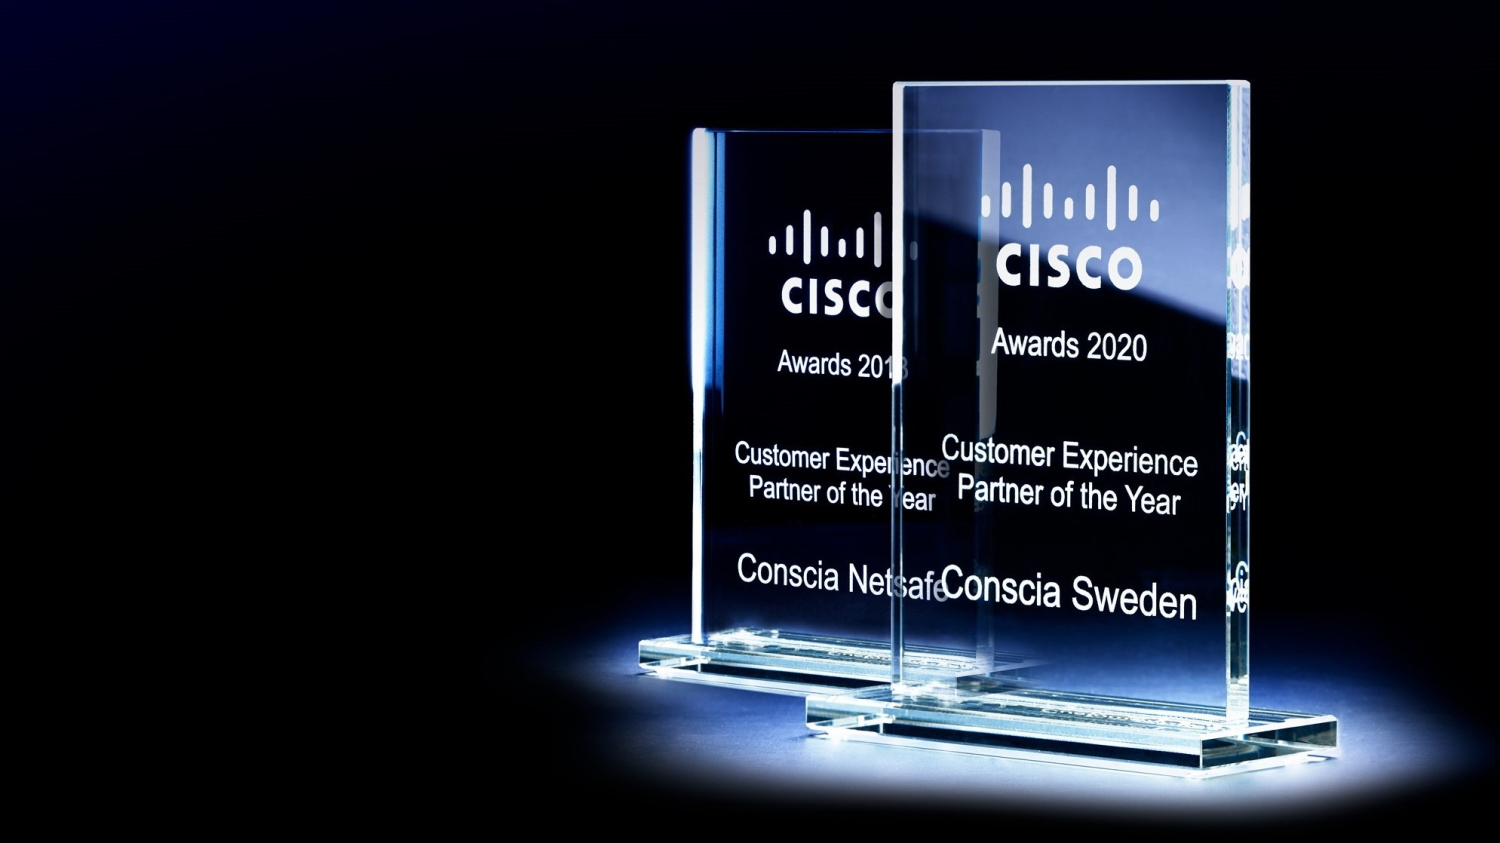 Cisco Customer Experience Partner of the Year 2018-2020